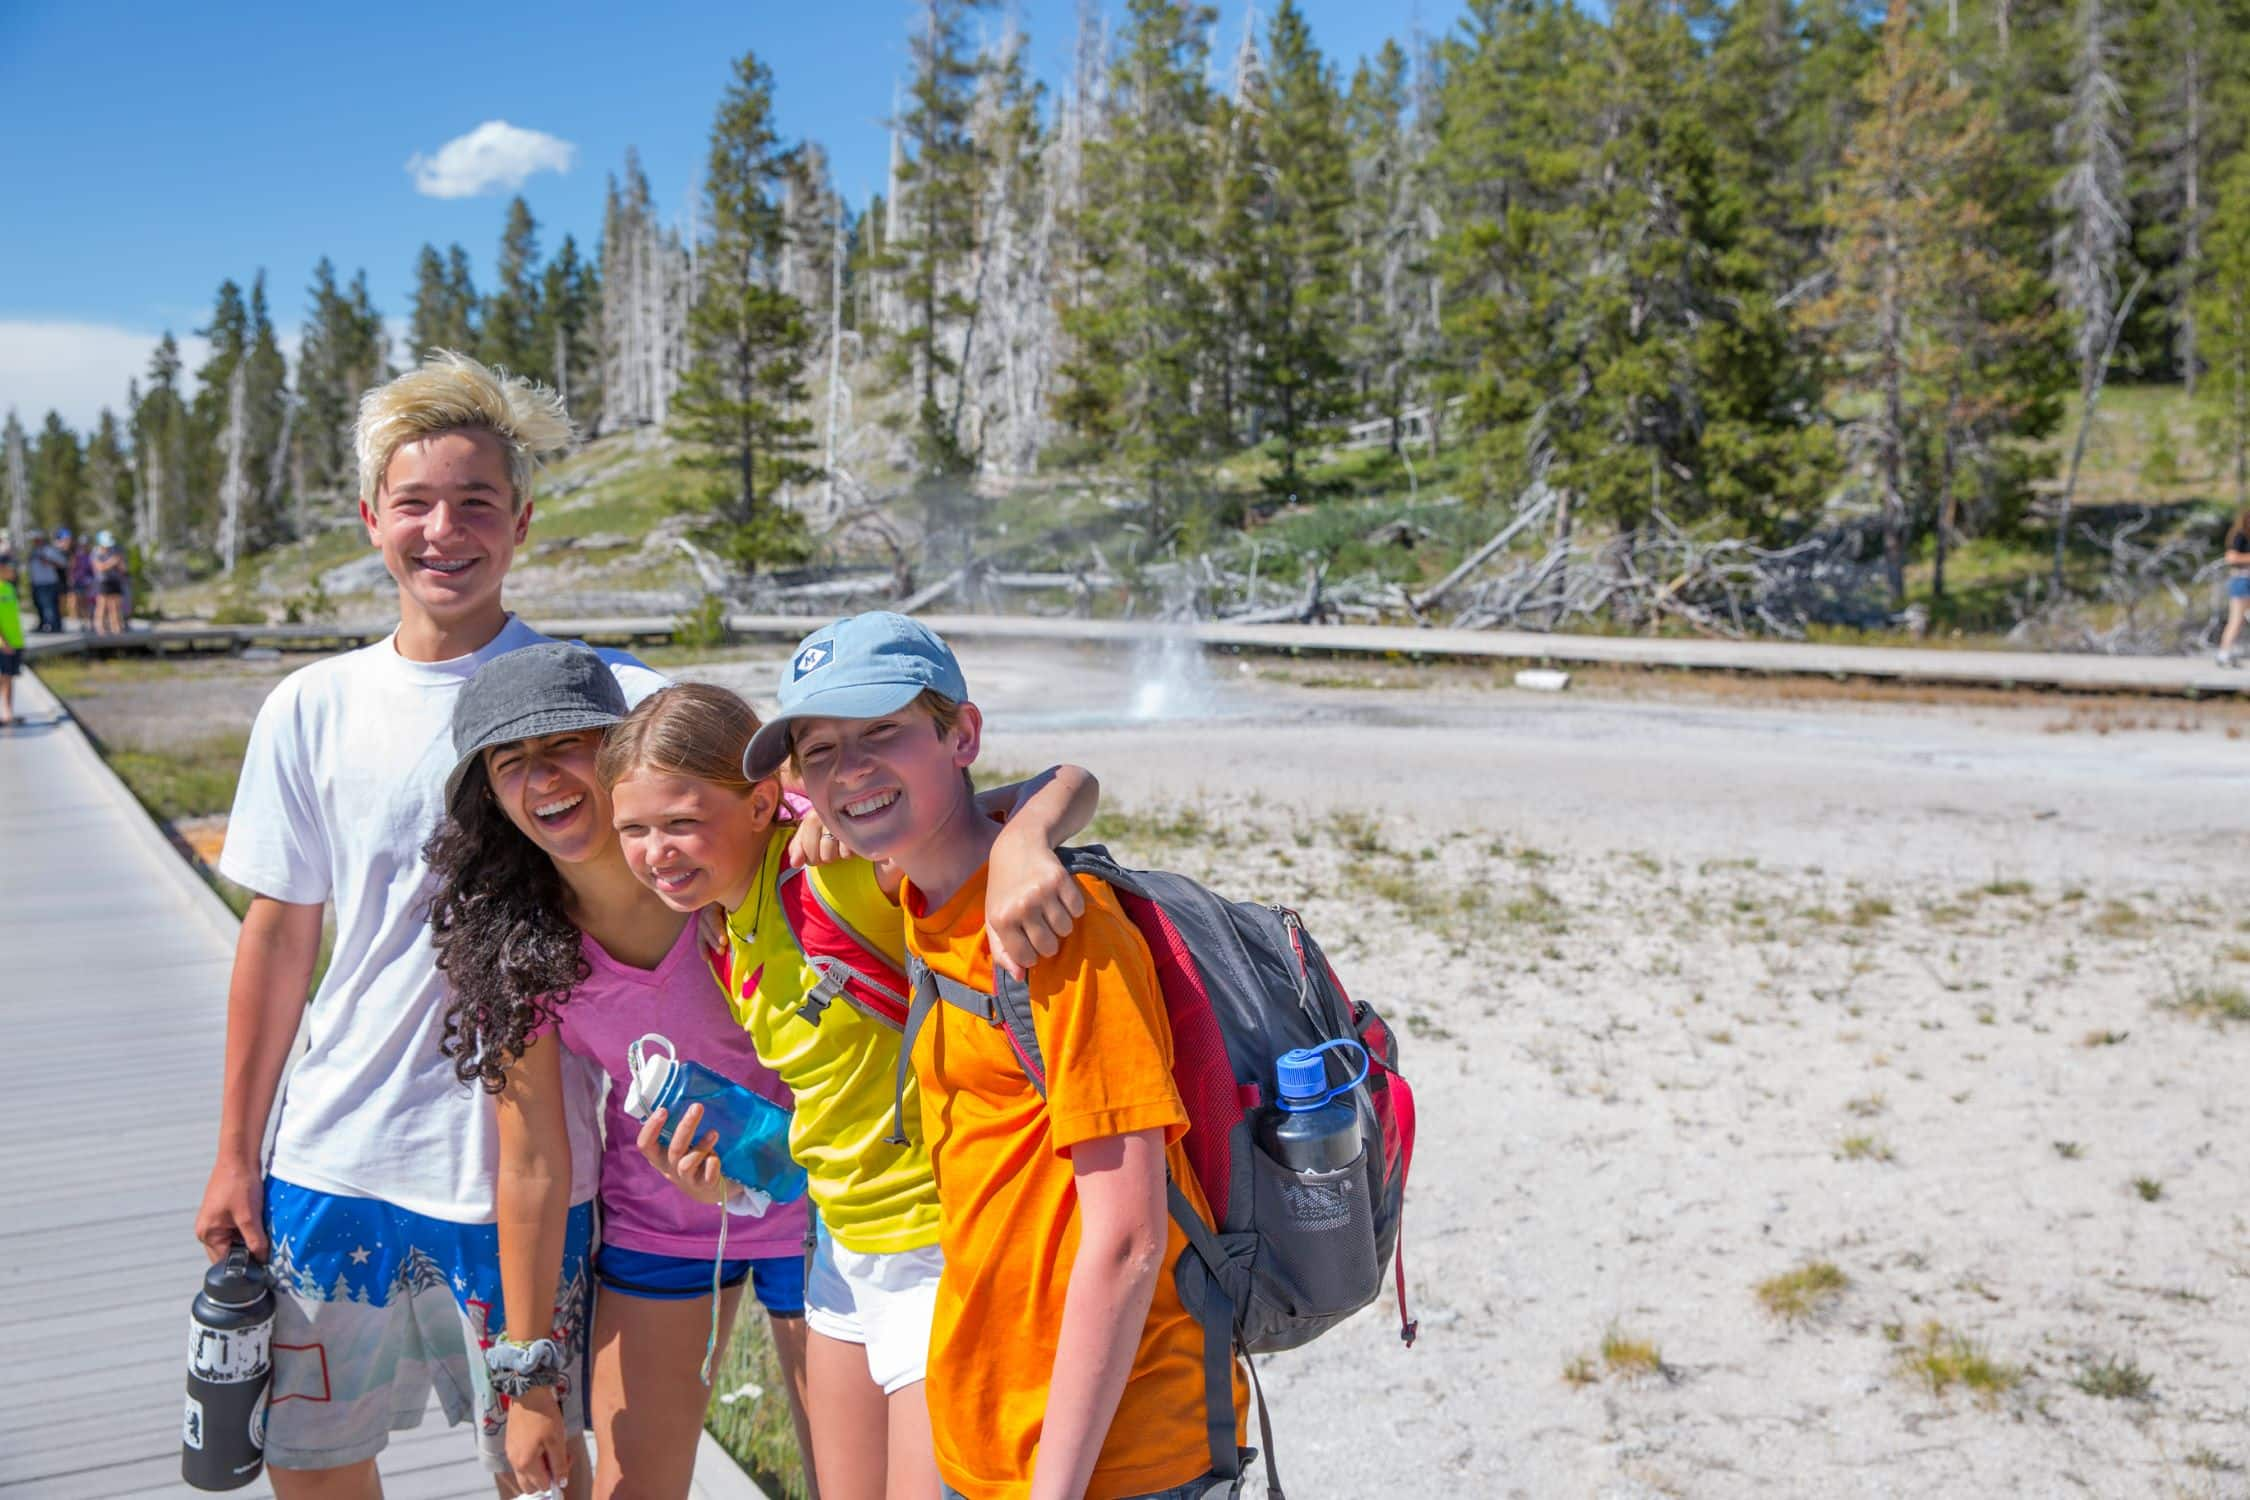 Campers are all smiles when hiking in beautiful Yellowstone this summer